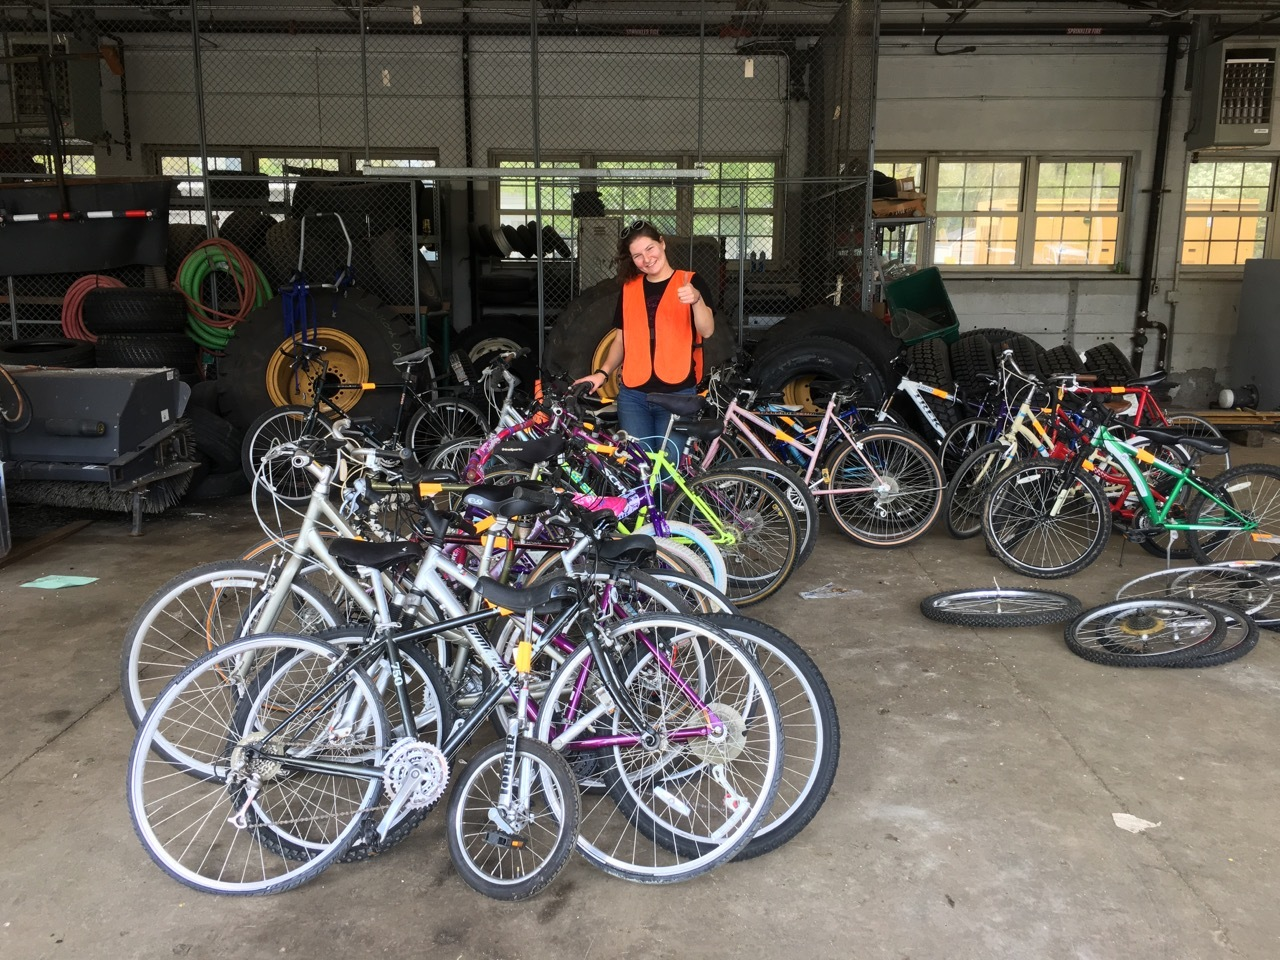 Volunteer giving a thumbs-up behind a row of bikes